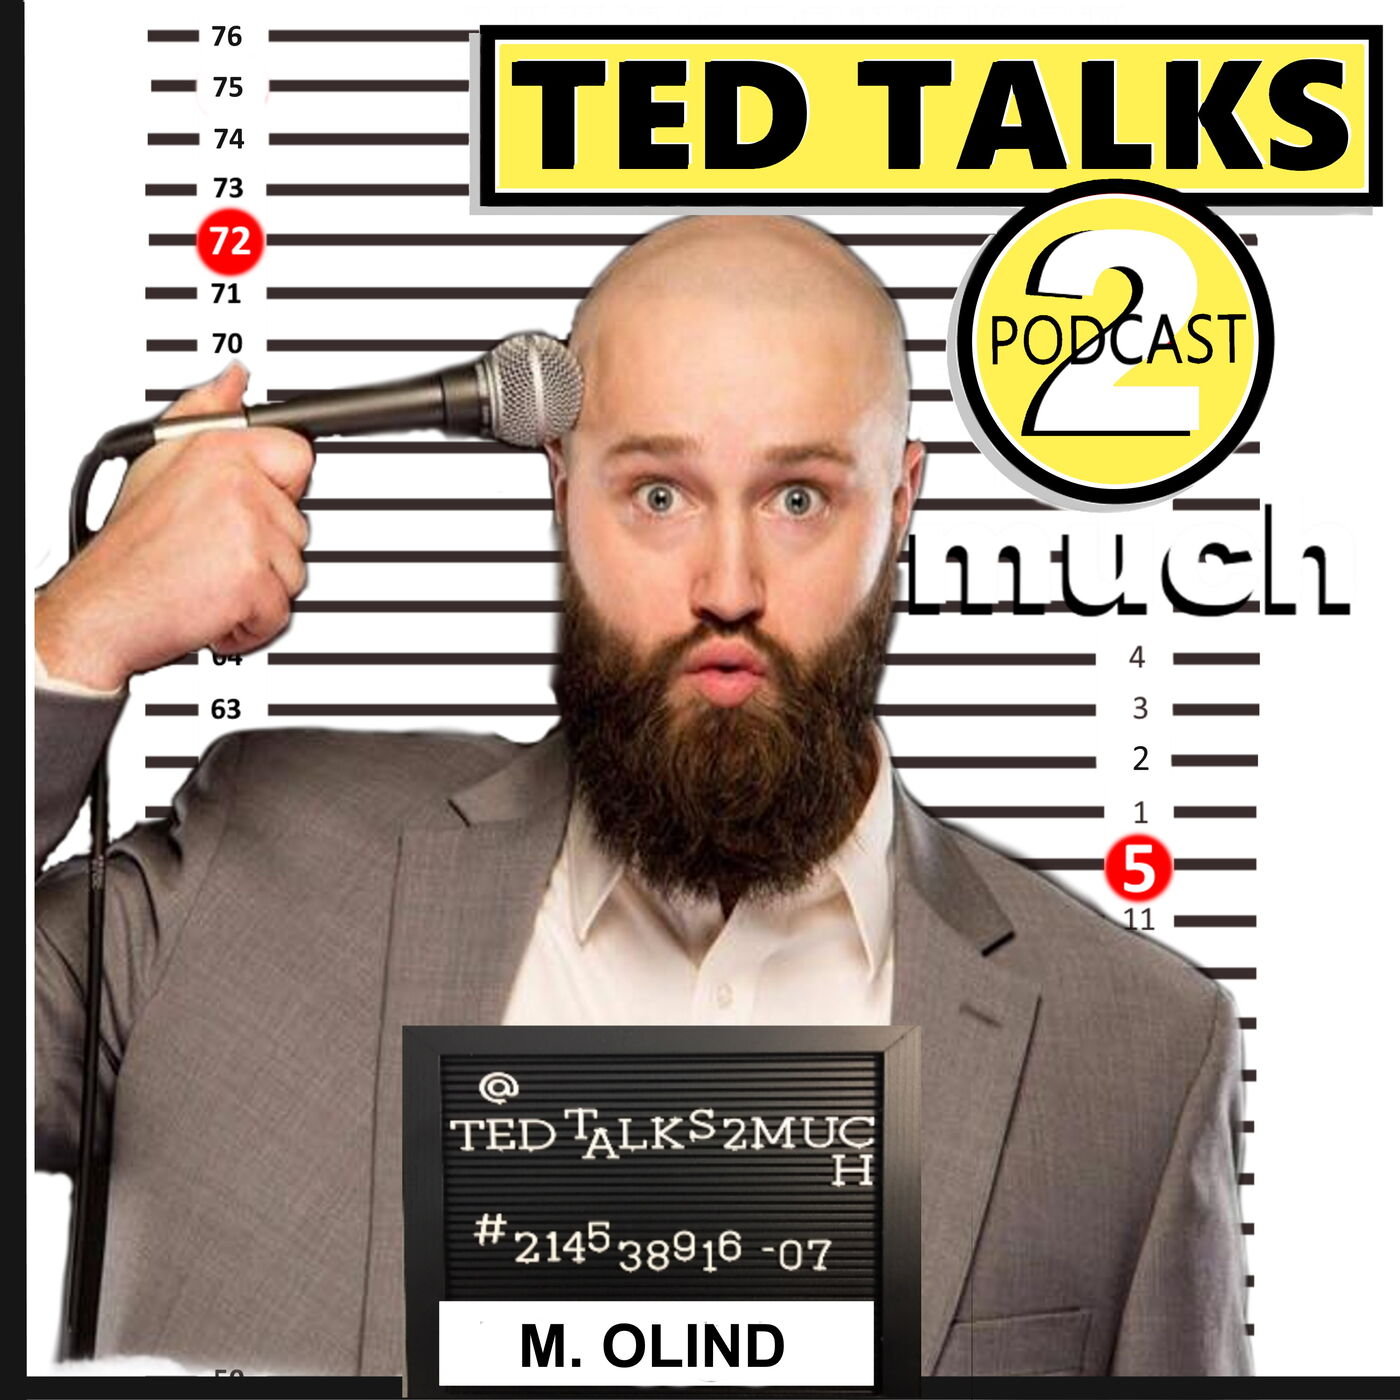 TED TALKS 2 Marcus Olind (Way, Way 2 Much)... about Money / Fame, Detroit Comedy & Accents